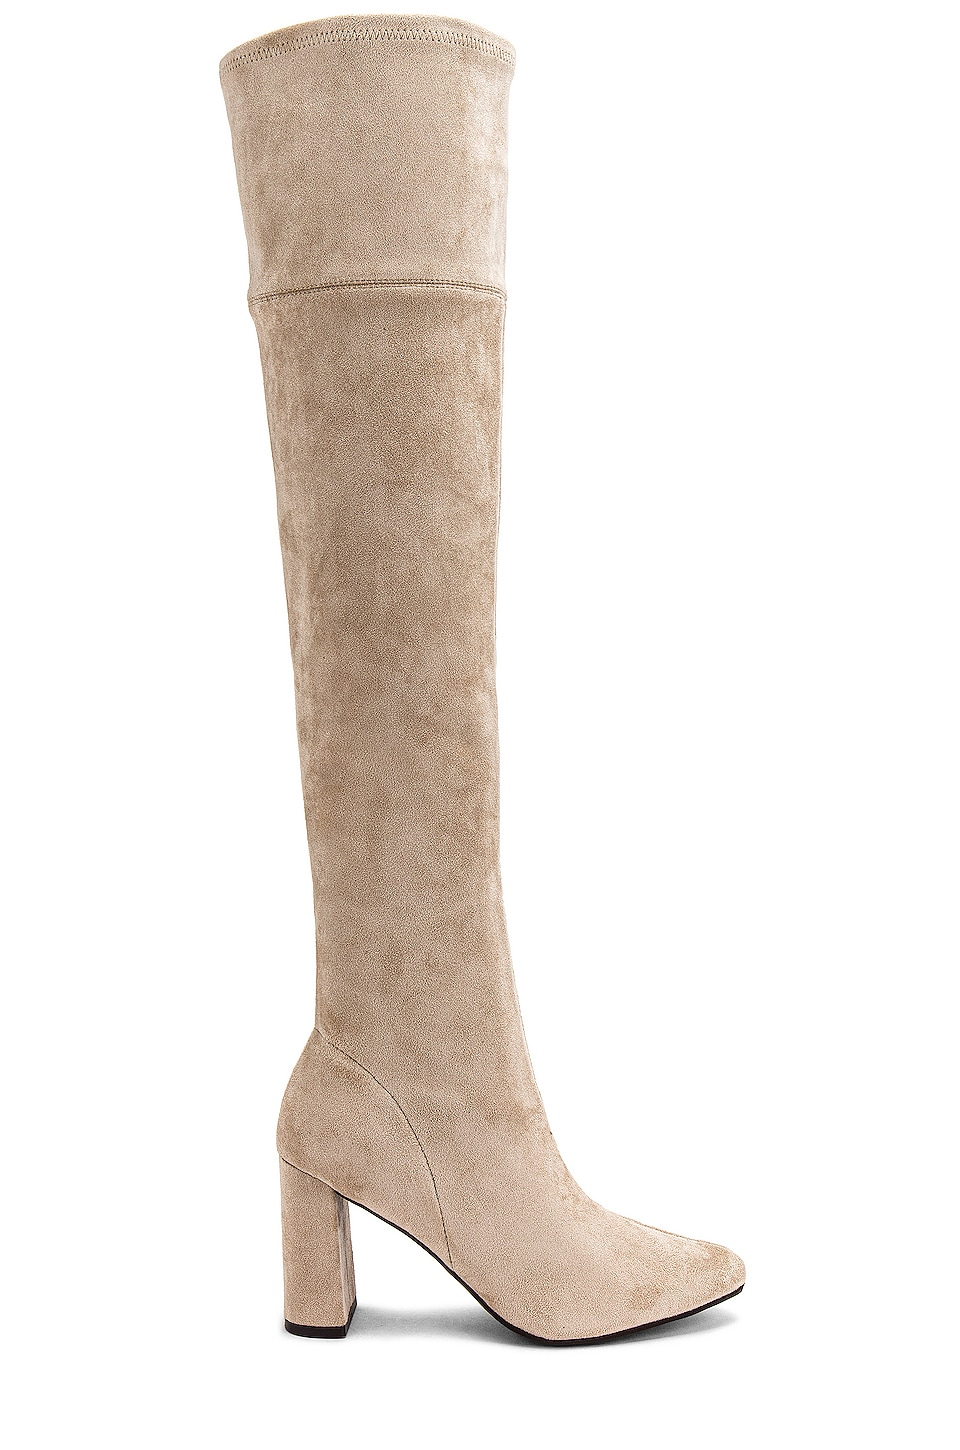 Jeffrey Campbell Parisah 2 Boot in Ice Suede